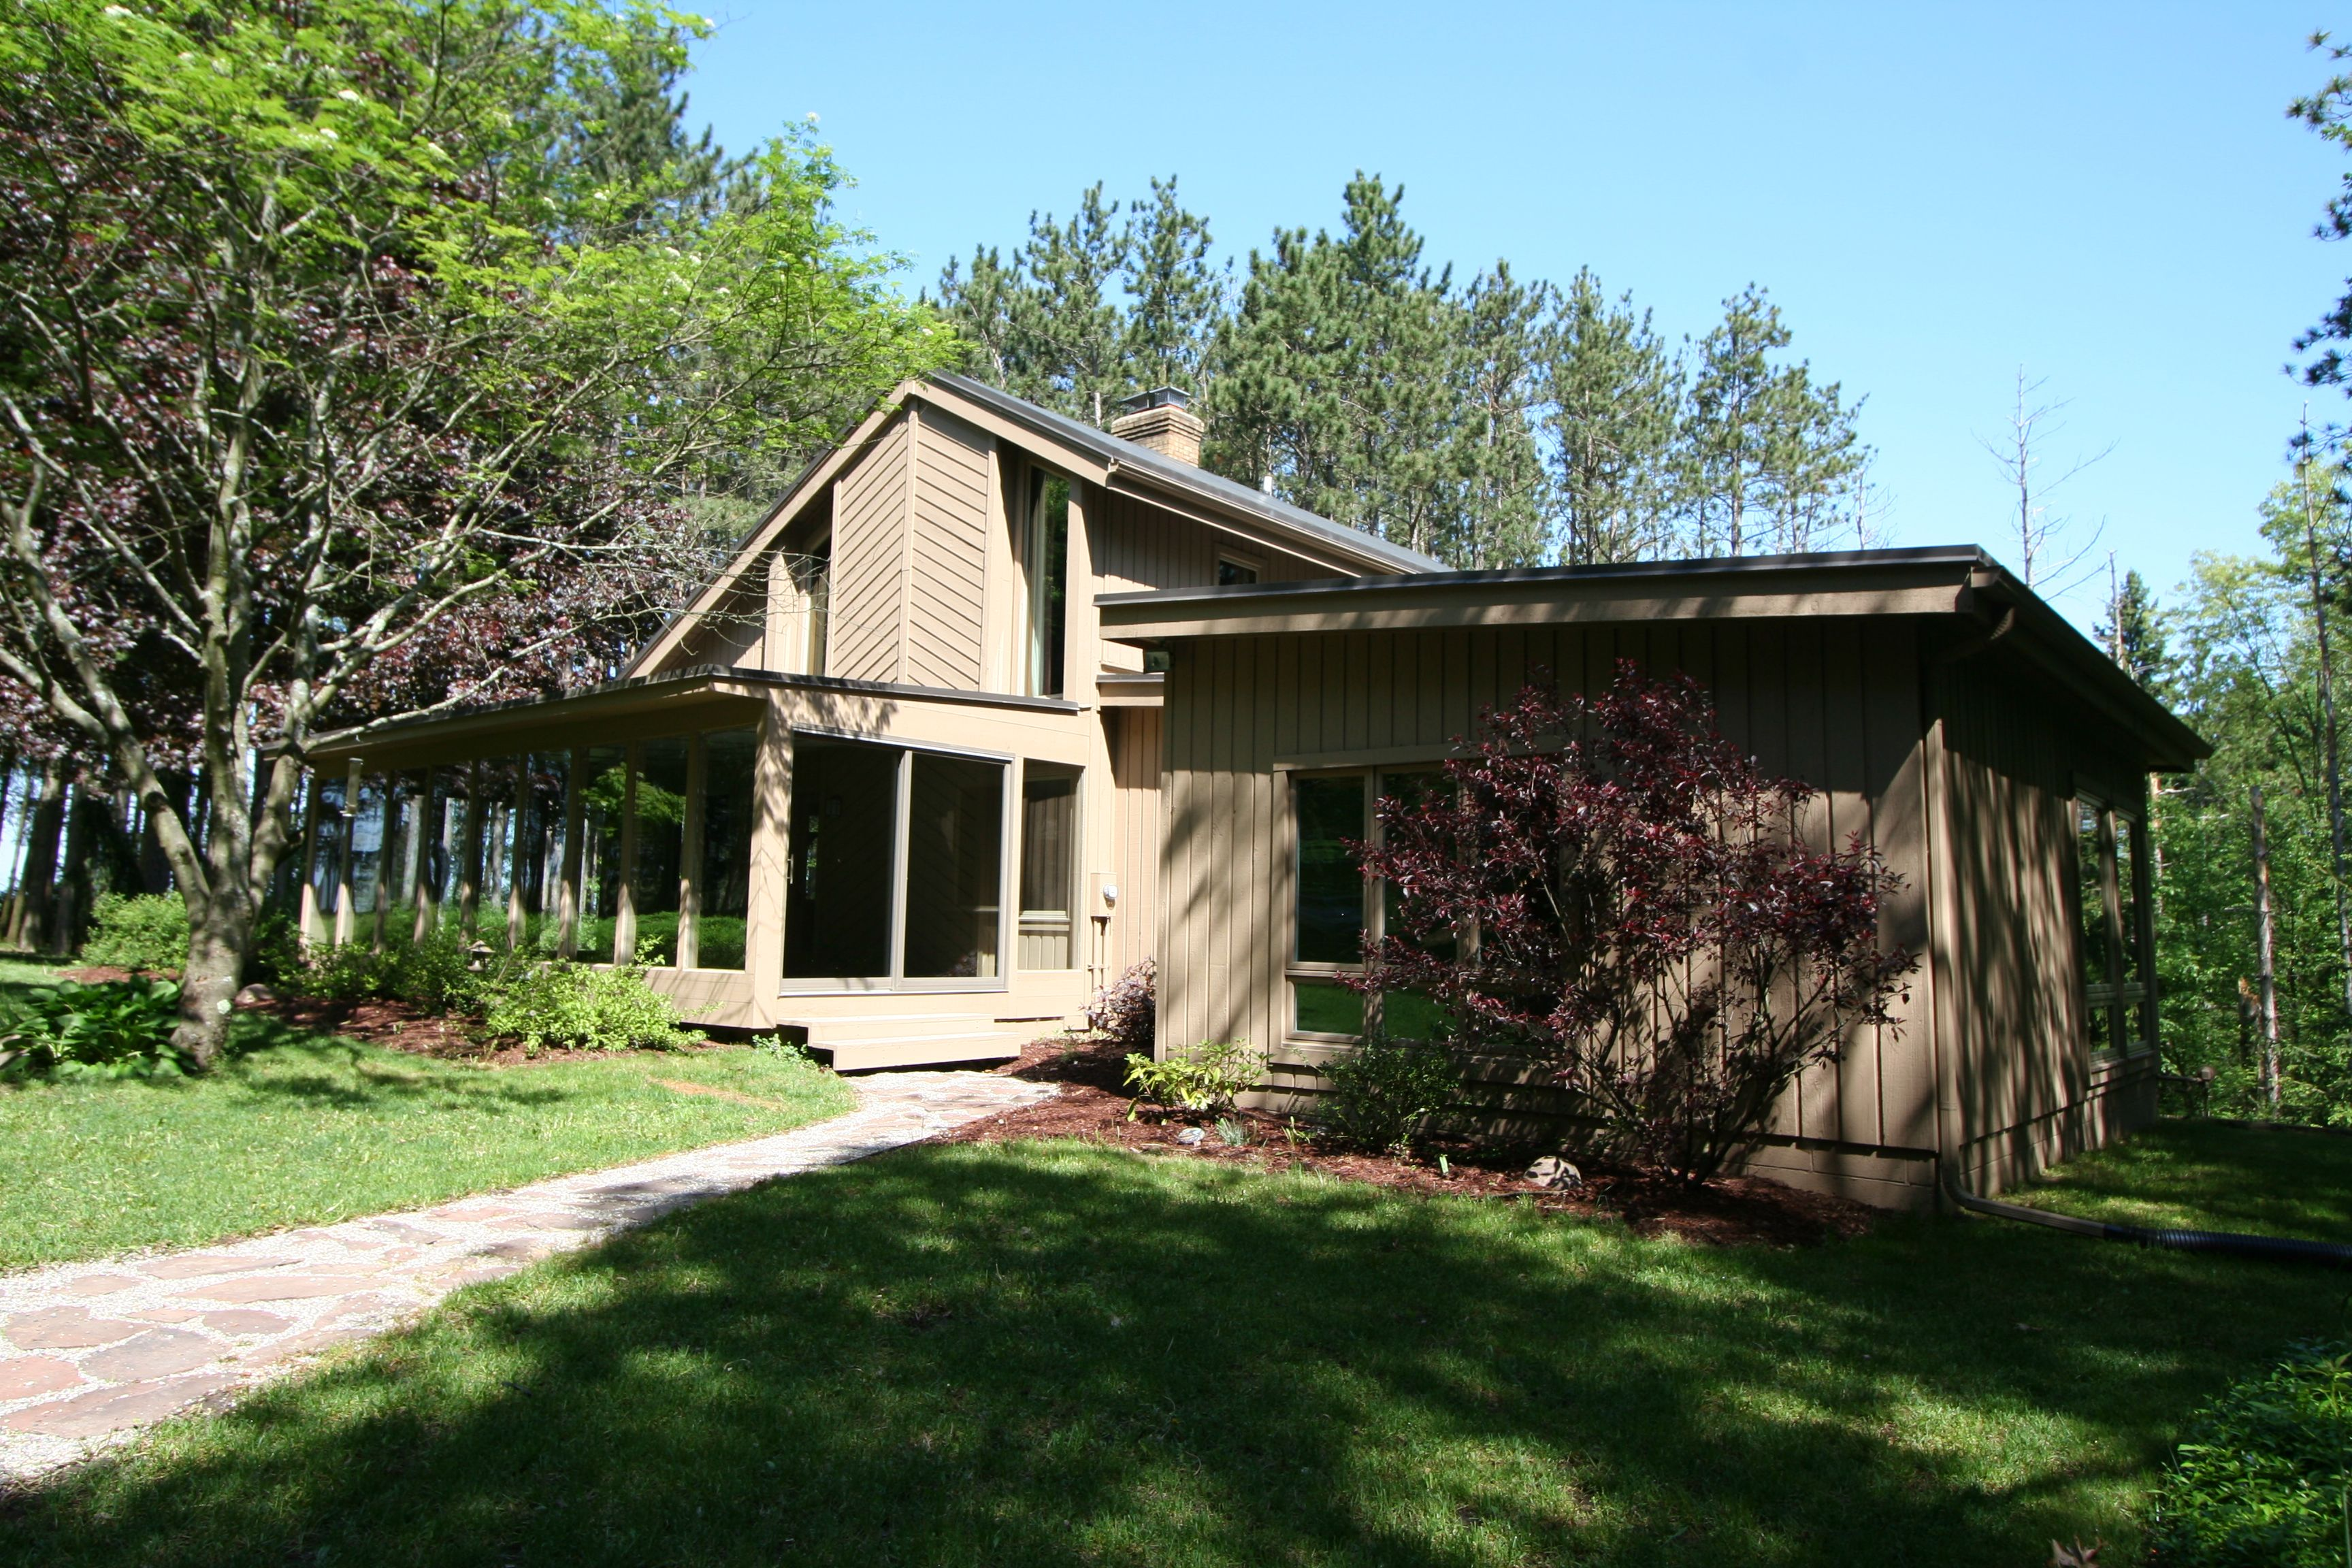 4775 mcguiness dexter mi total up north feel on 5